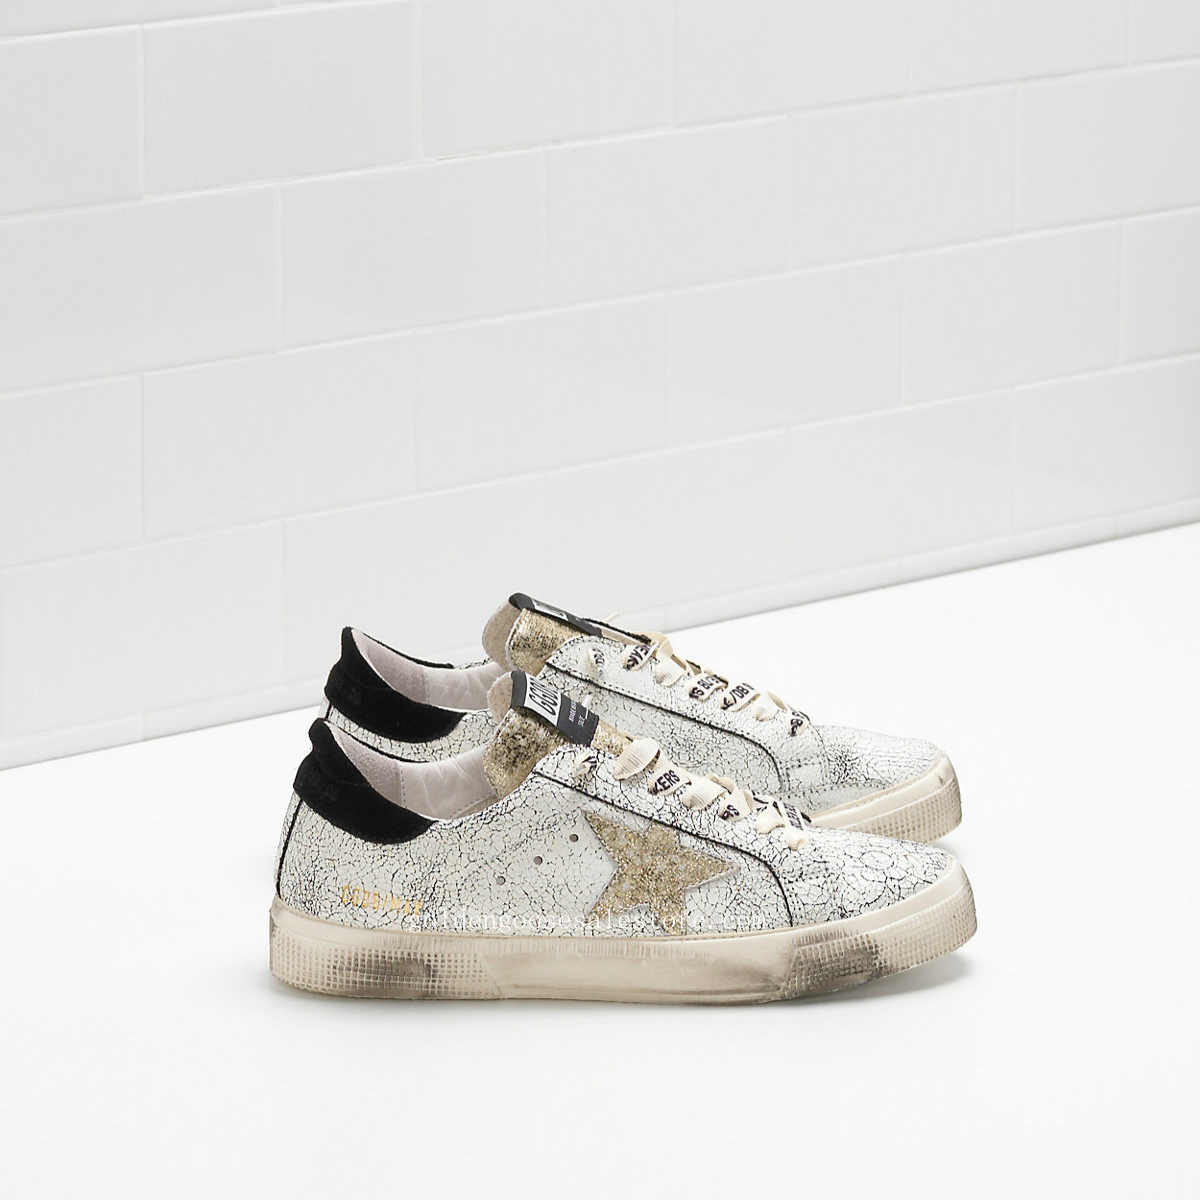 Golden Goose Deluxe Brand May Sneakers In Laminated Python Effect Leather With Gold Star G30WS127E14